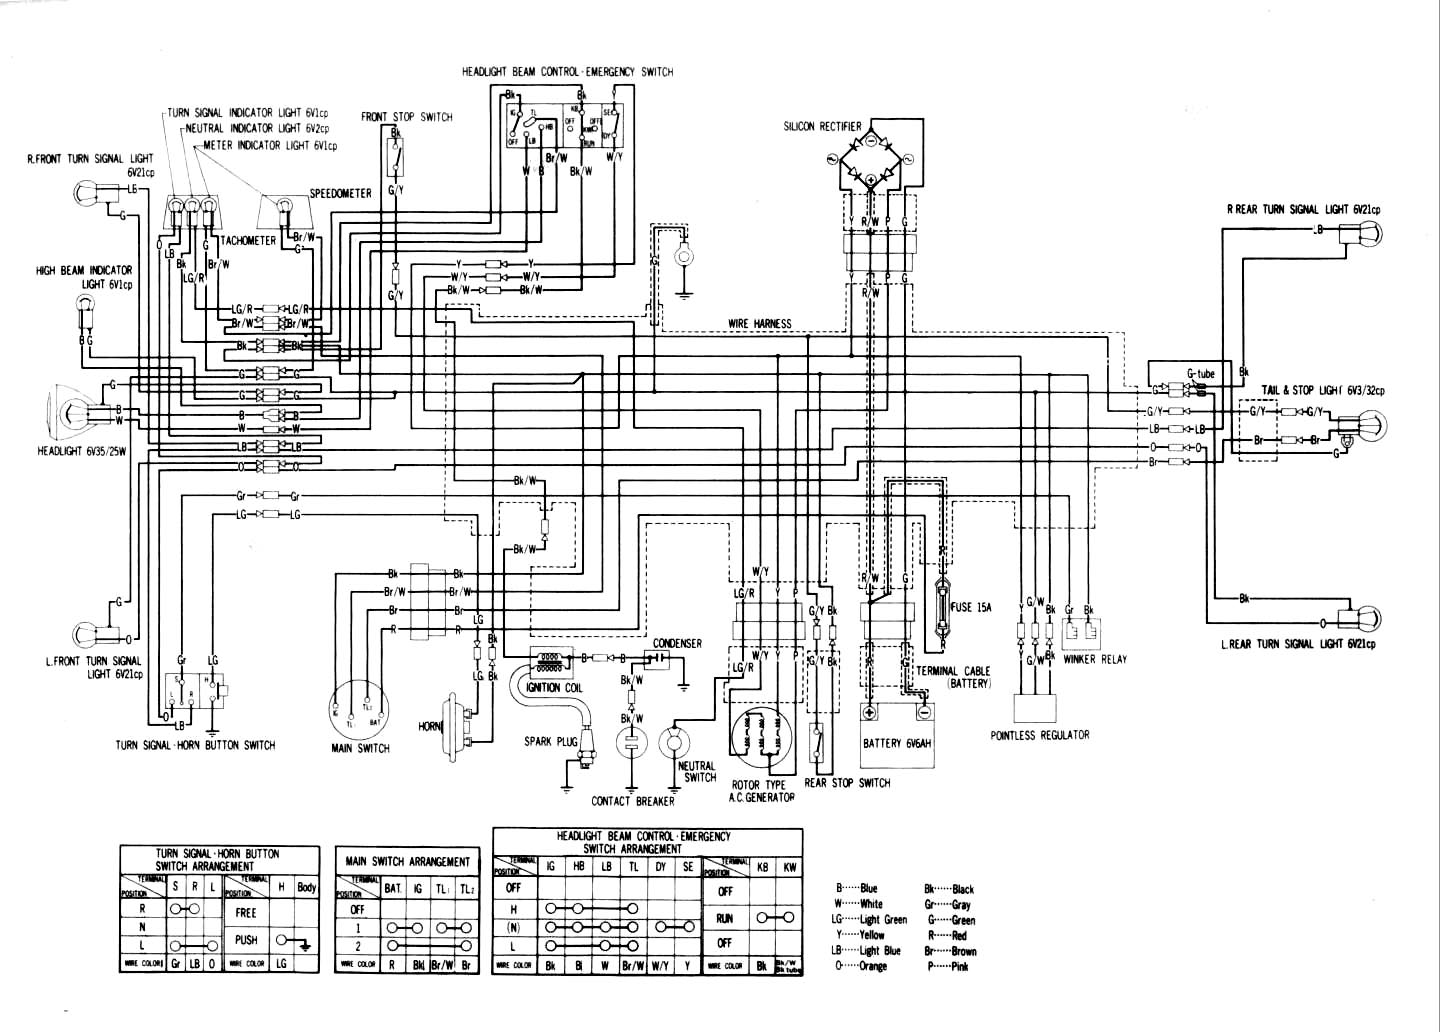 1981 Suzuki Gs 550 Wiring Diagram. Suzuki. Wiring Diagrams Instructions